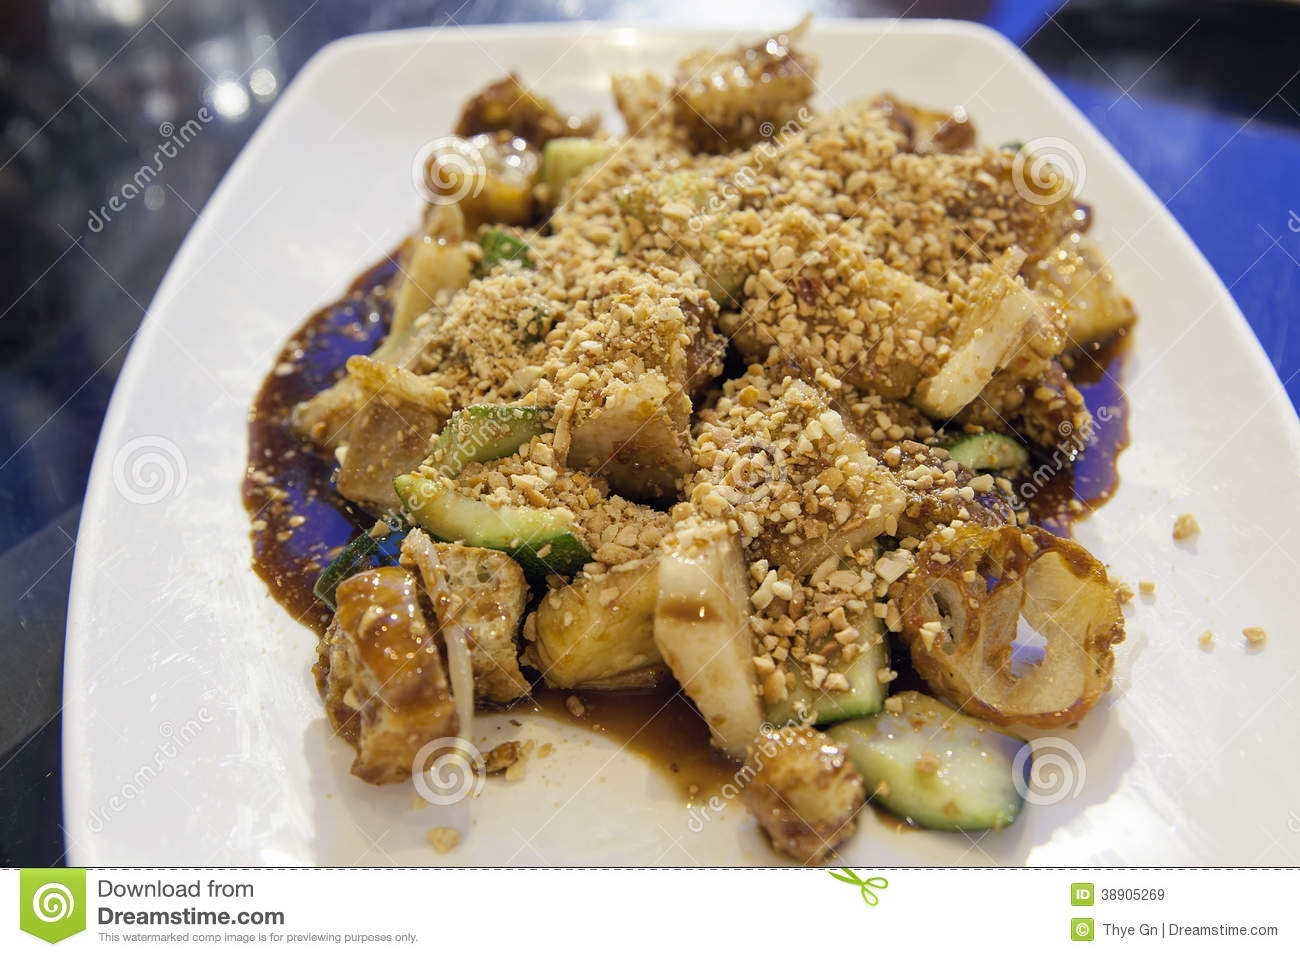 Singapore Fruit Rojak Closeup Stock Photo - Image: 38905269